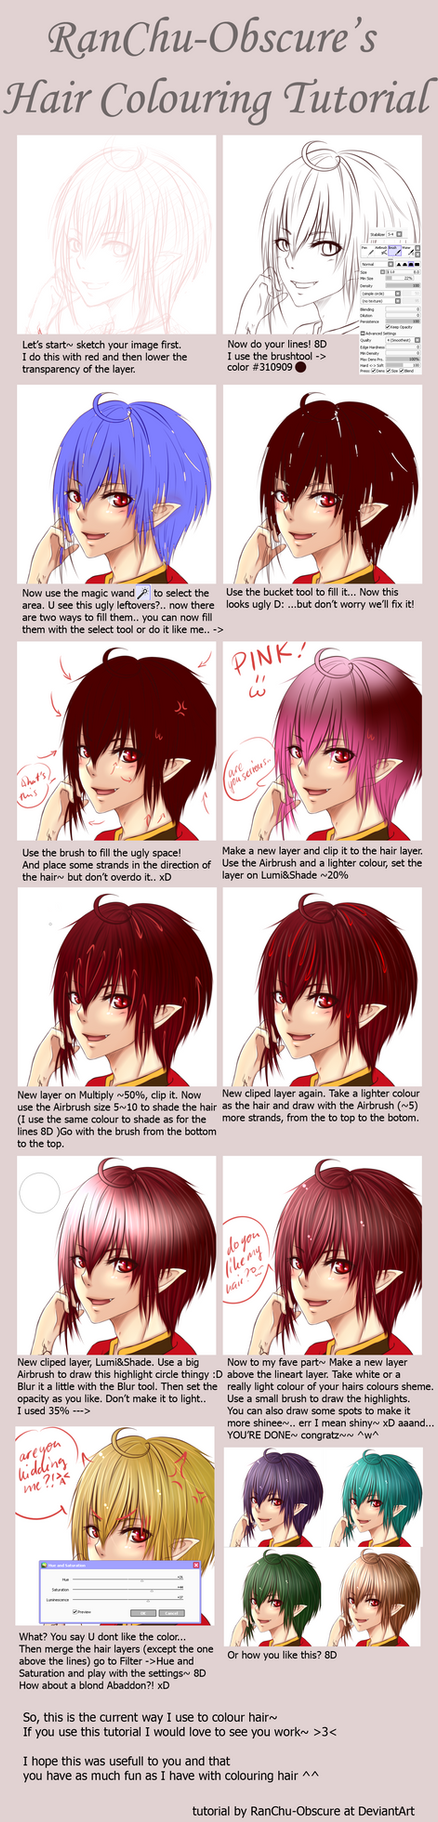 SAI Hair Colouring Tutorial by RanChu-Obscure